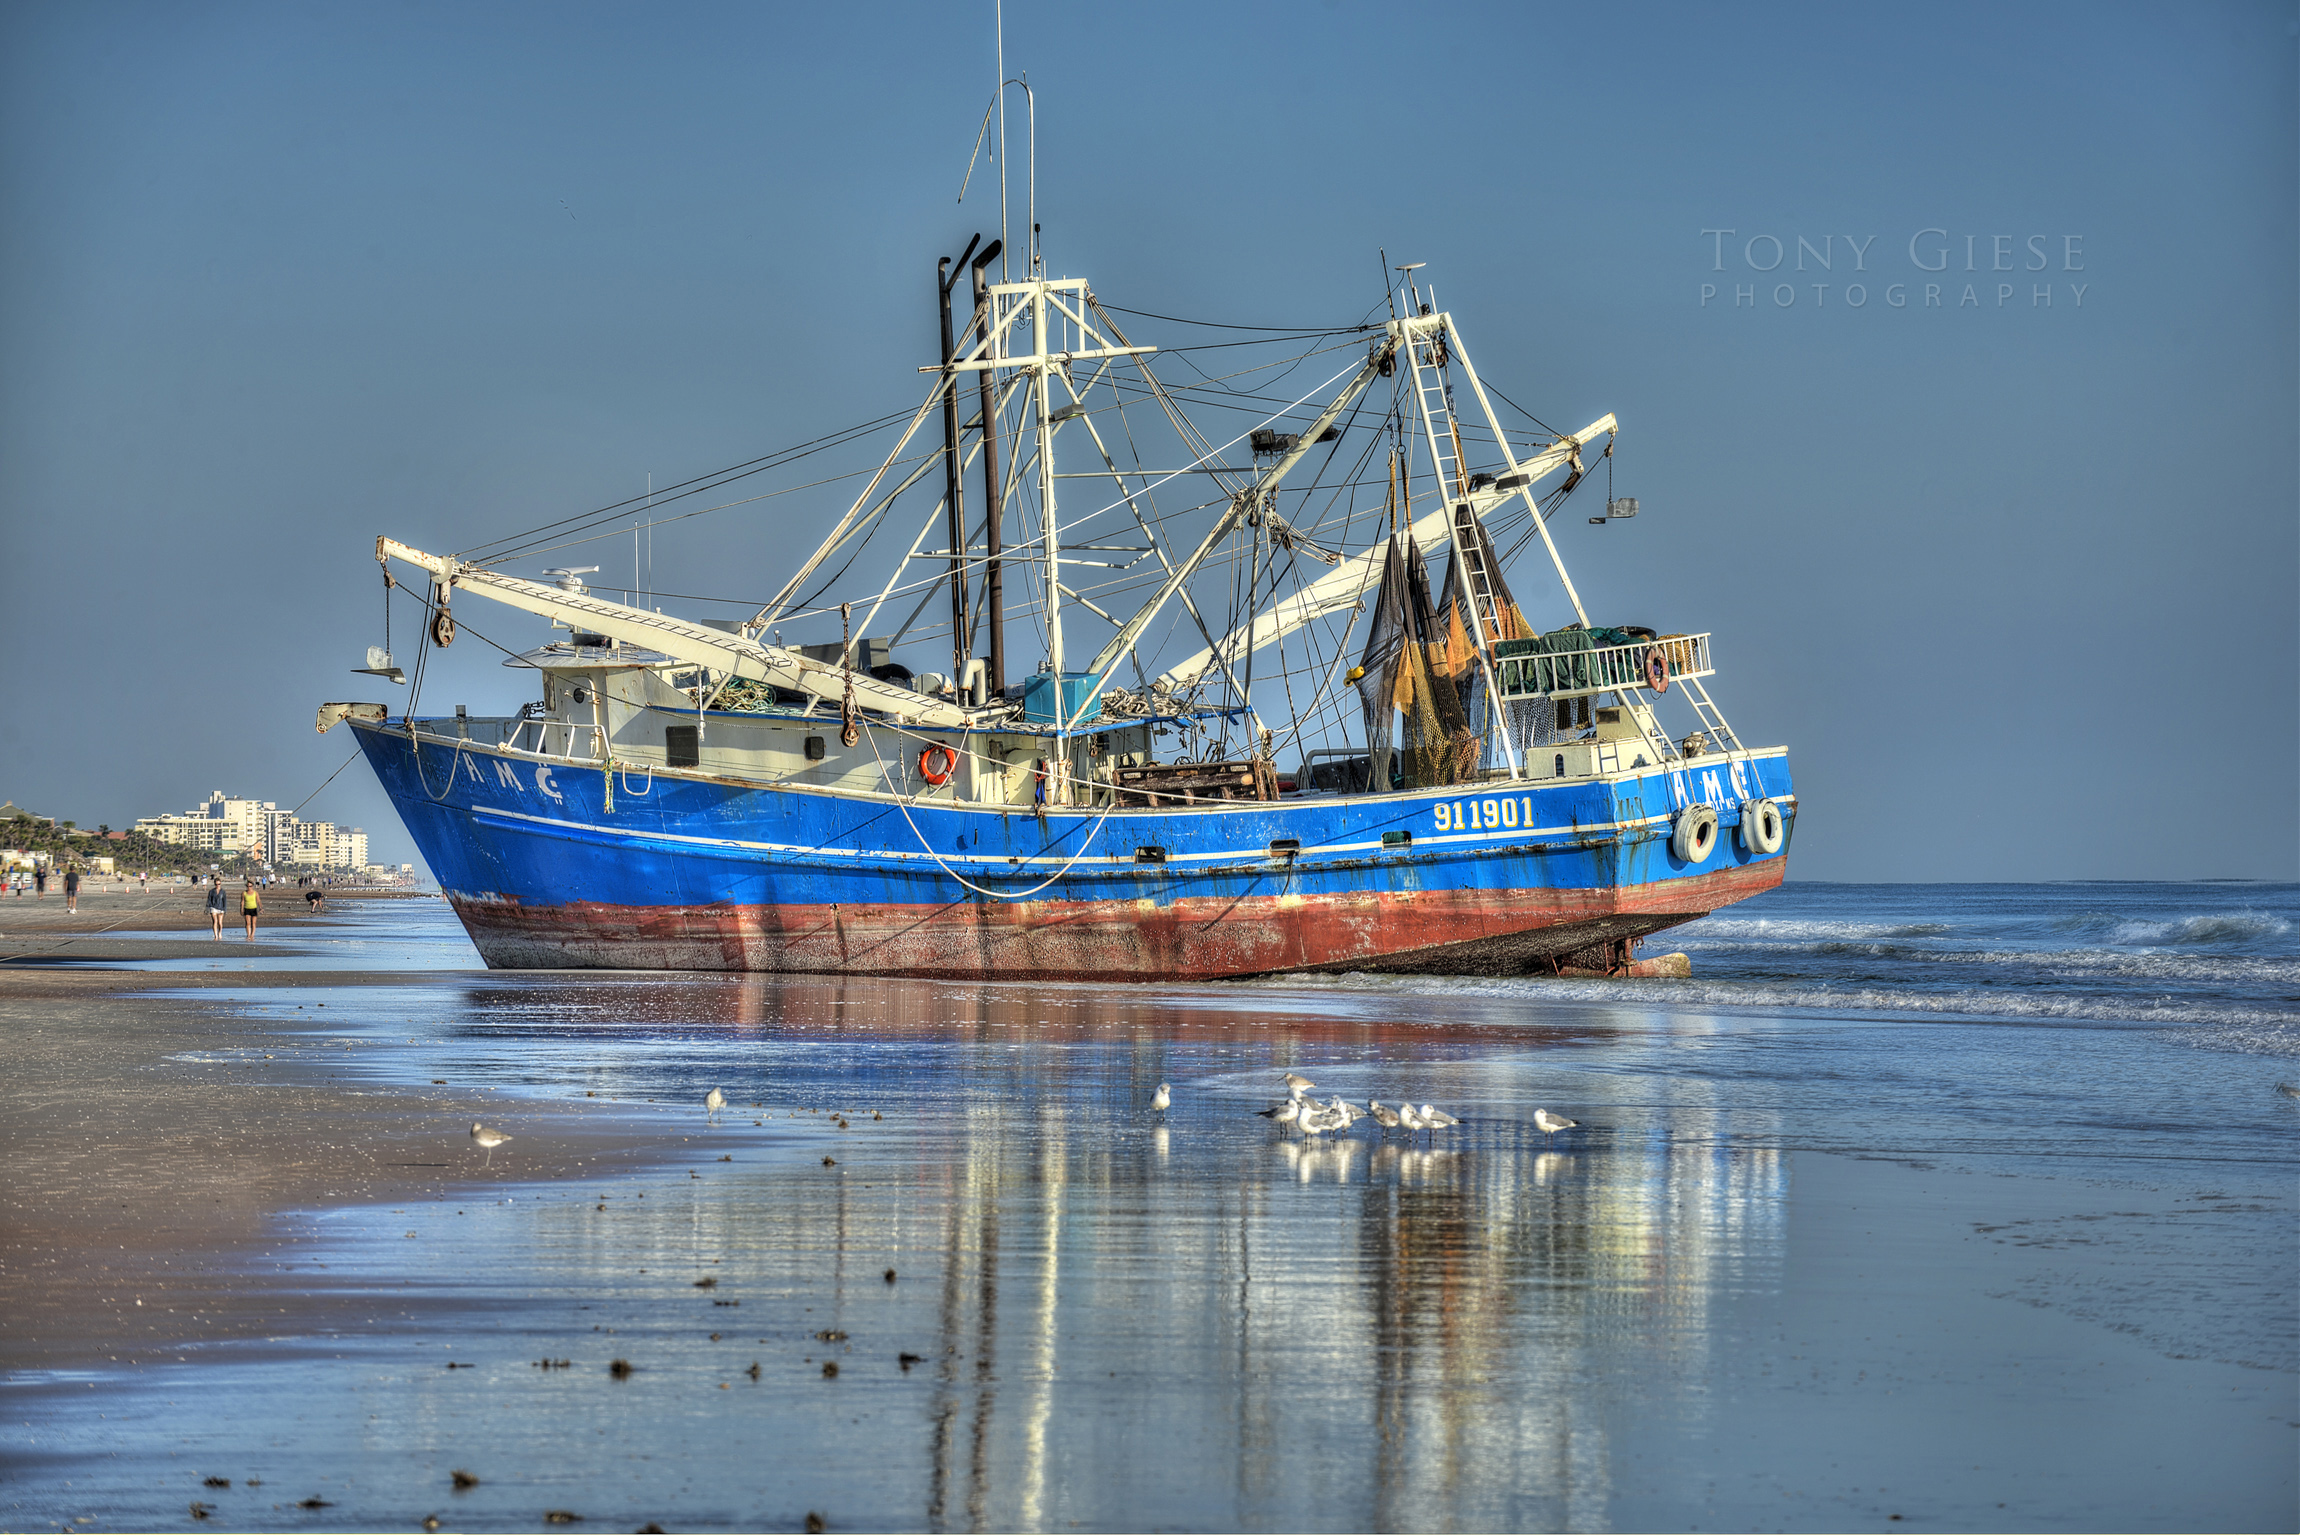 A shrimp boat ran aground in Ormond Beach for almost two weeks before a barge pulled it back out to sea. Interesting beach attraction for tourist and all local residents as it rested on the shoreline.